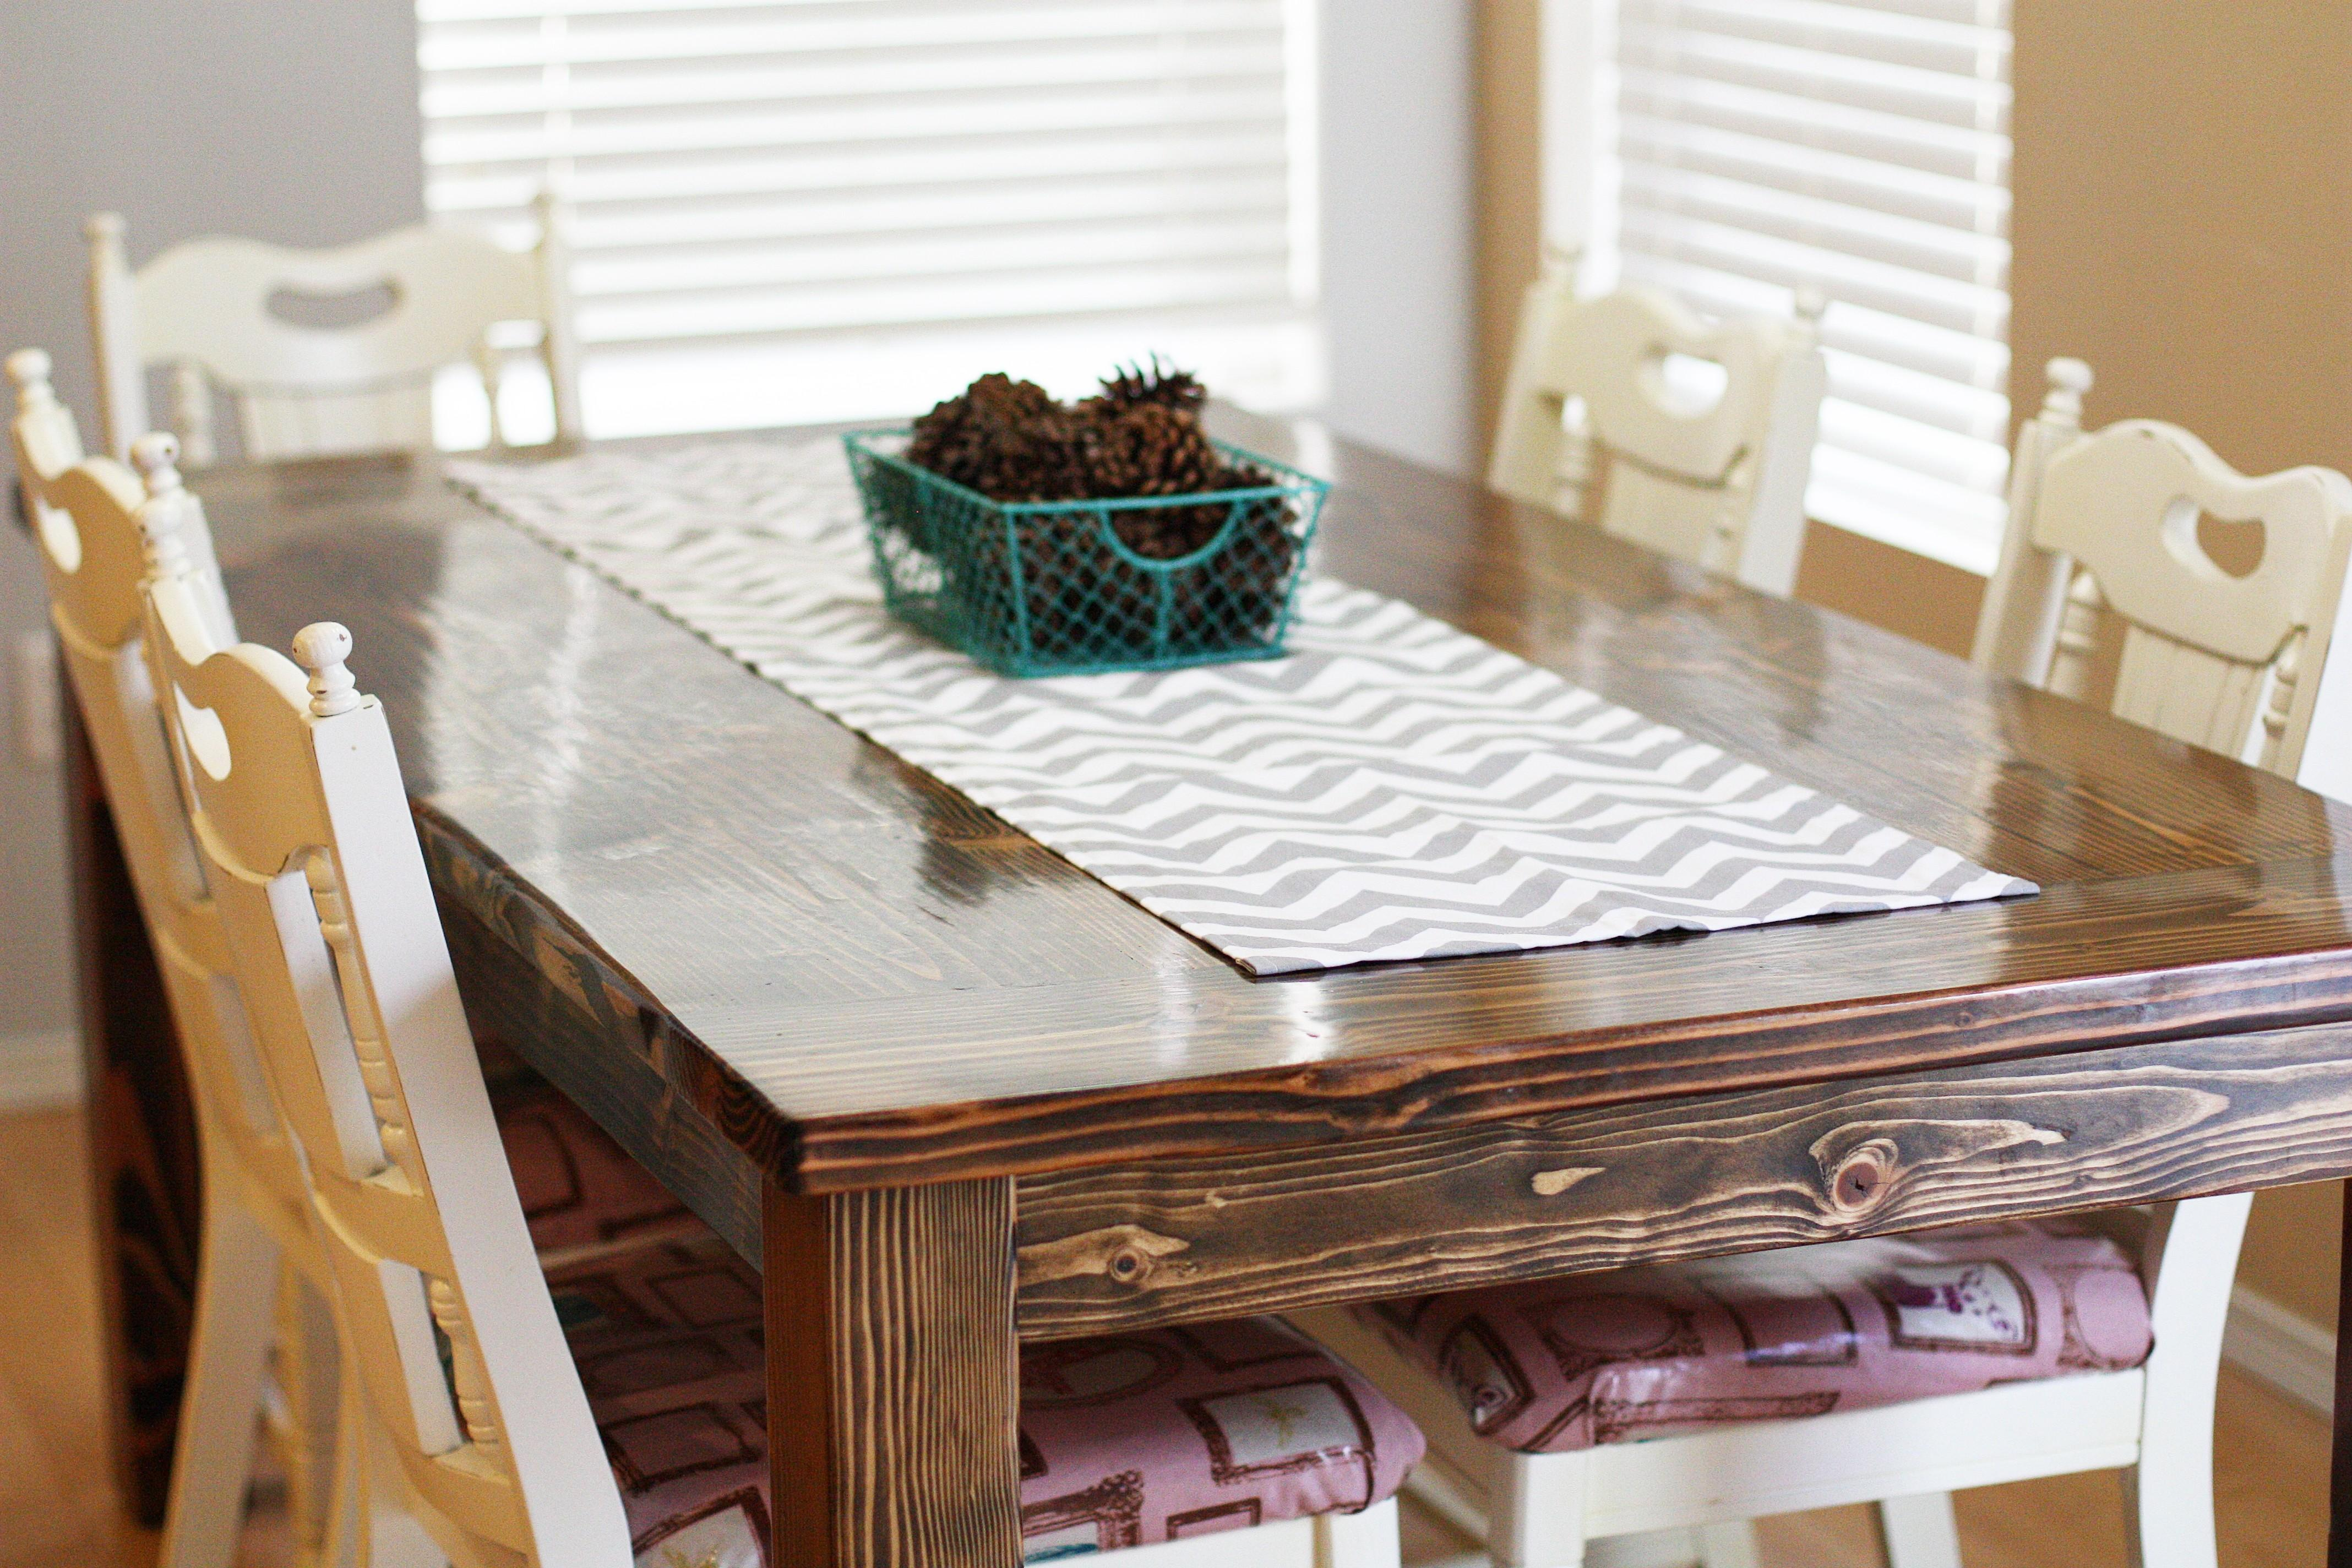 Creative Stylish Table Runner Ideas That Turn Warehouses Into Homes Awesome Pictures Decoratorist